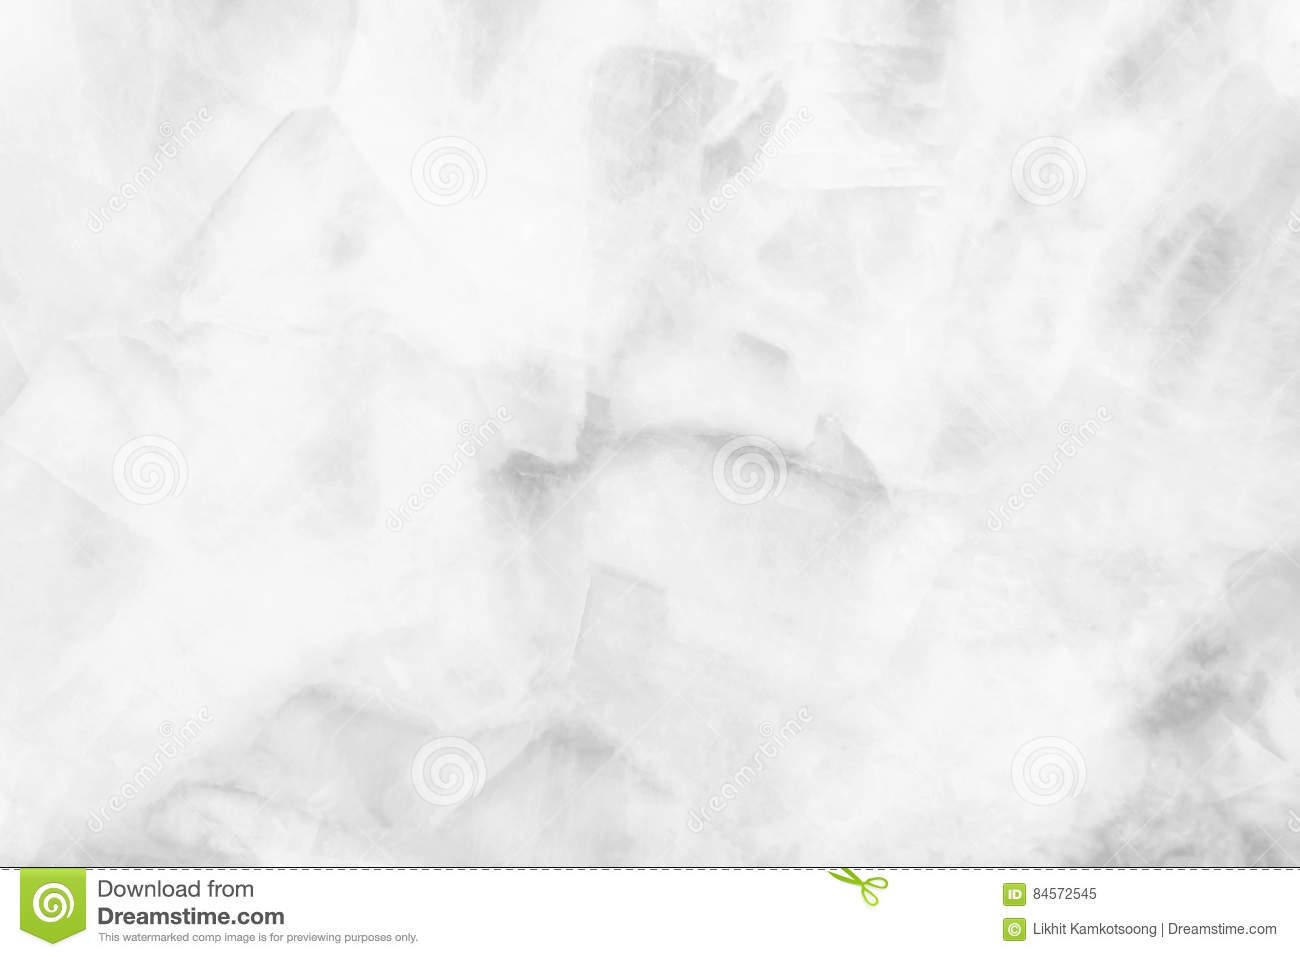 Abstract Natural Marble Black And White Gray White Marble Texture Background High Resolution Textured Of The Marble Floor Stock Image Image Of Antique Architecture 84572545